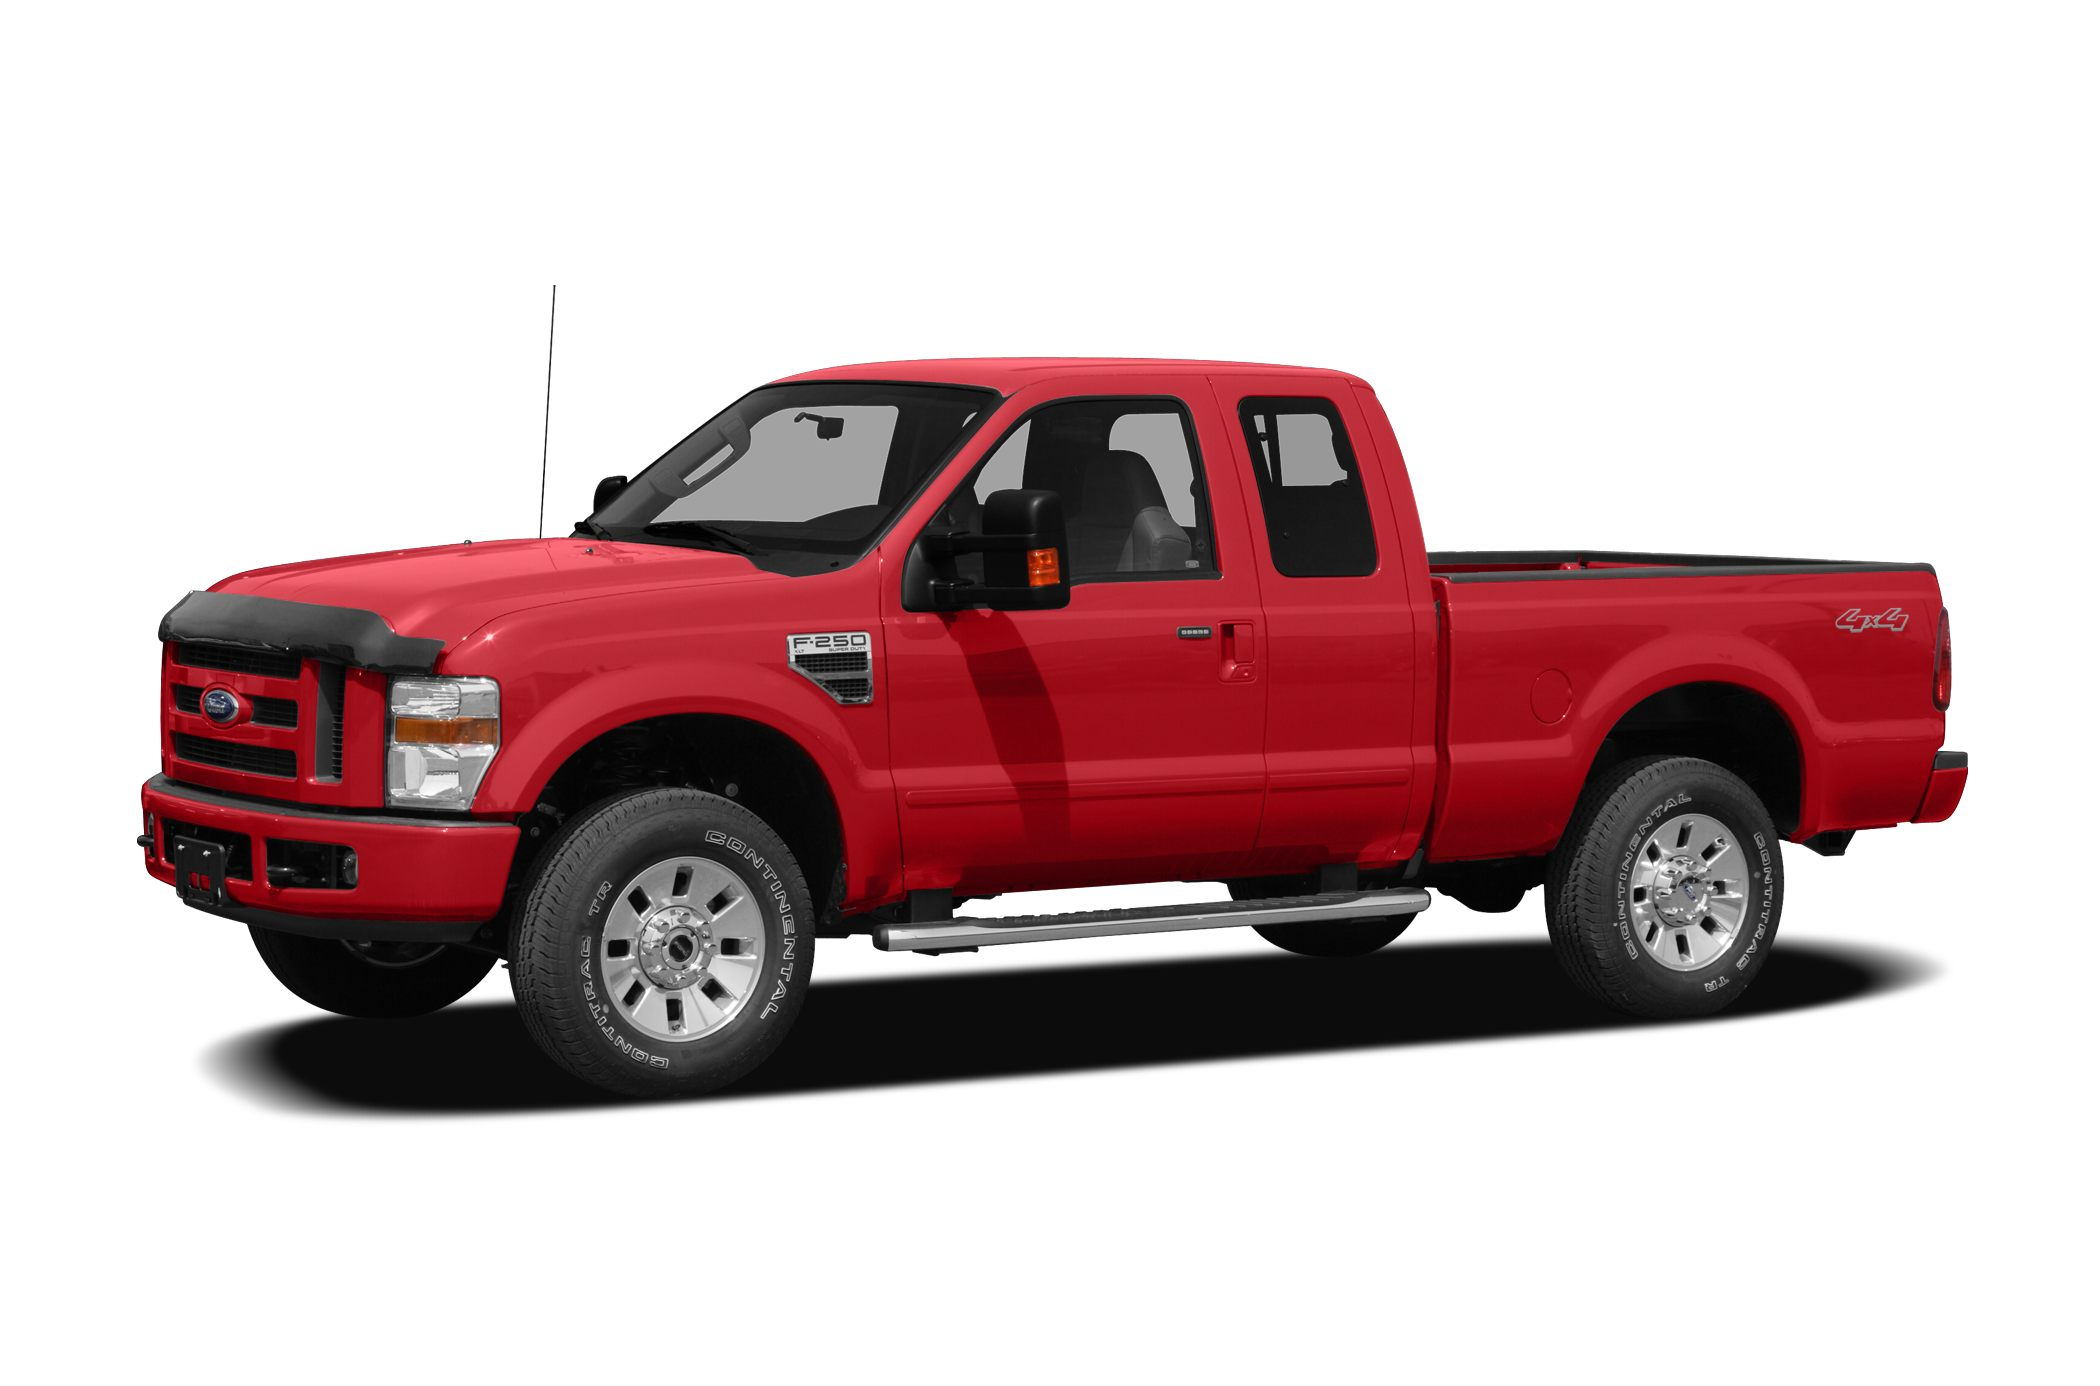 2008 Ford F-250  Miles 86620Color Red Stock 16399 VIN 1FTSX21R08EB60469